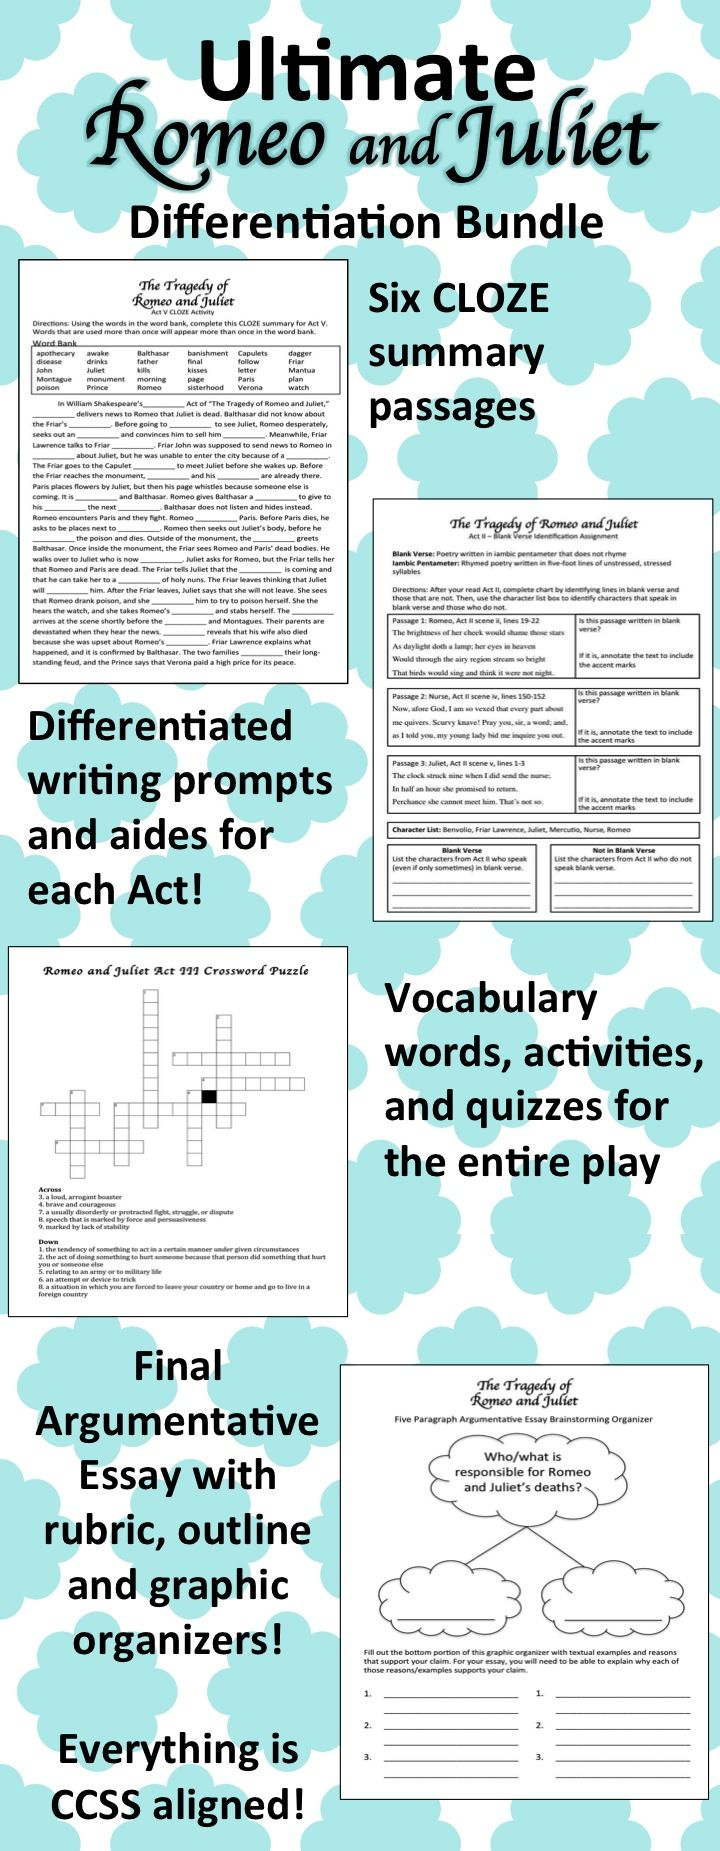 images about romeo et juliet plays student this ultimate ldquoromeo and julietrdquo differentiation bundle includes everything you will need to help